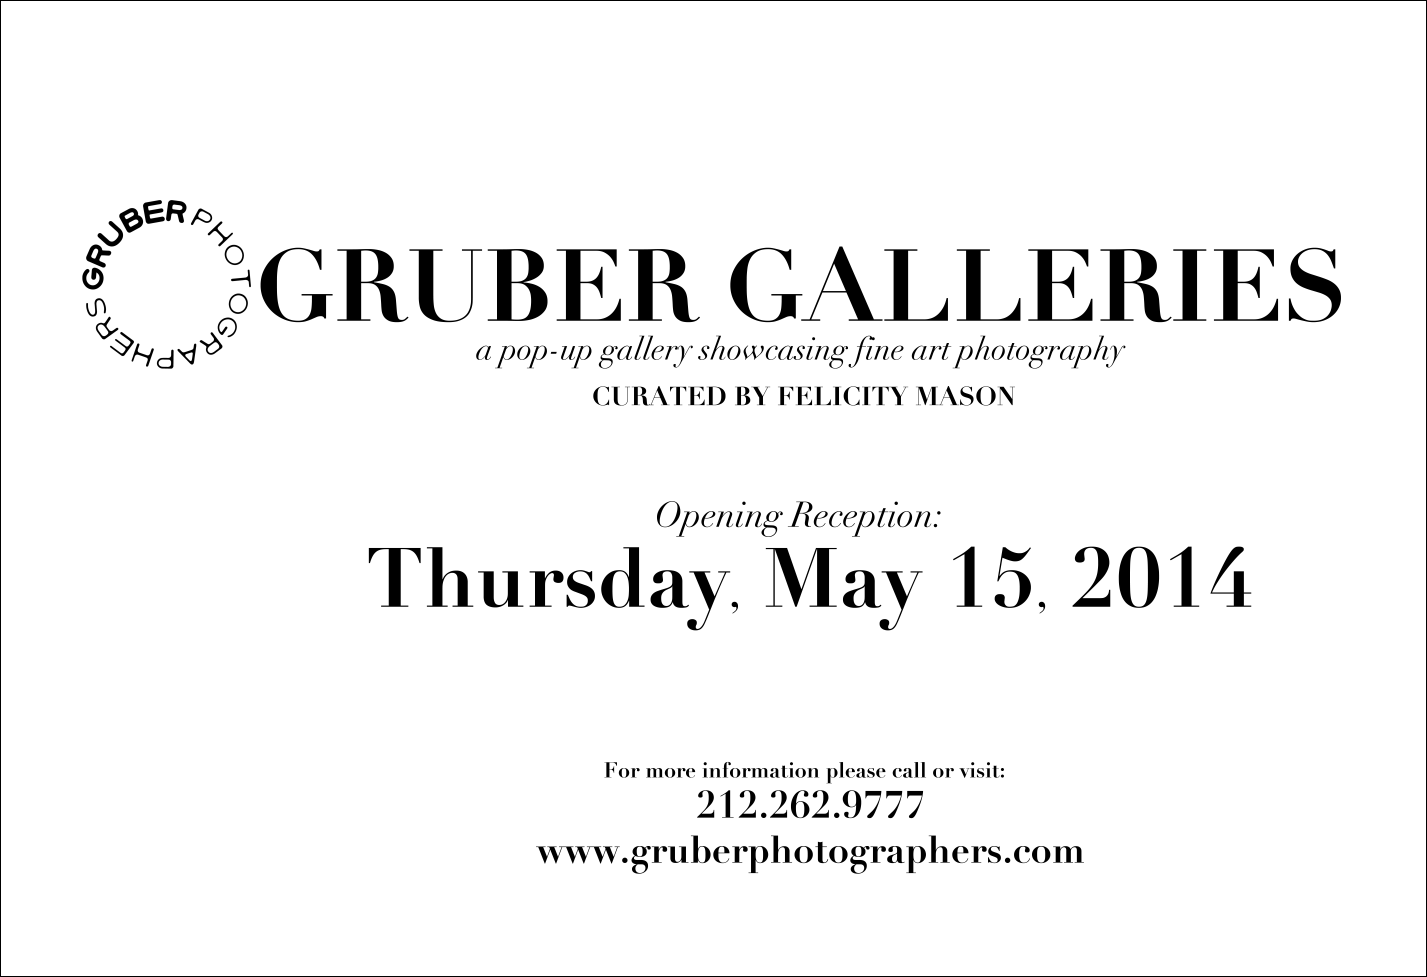 Gruber Galleries Advertismenet